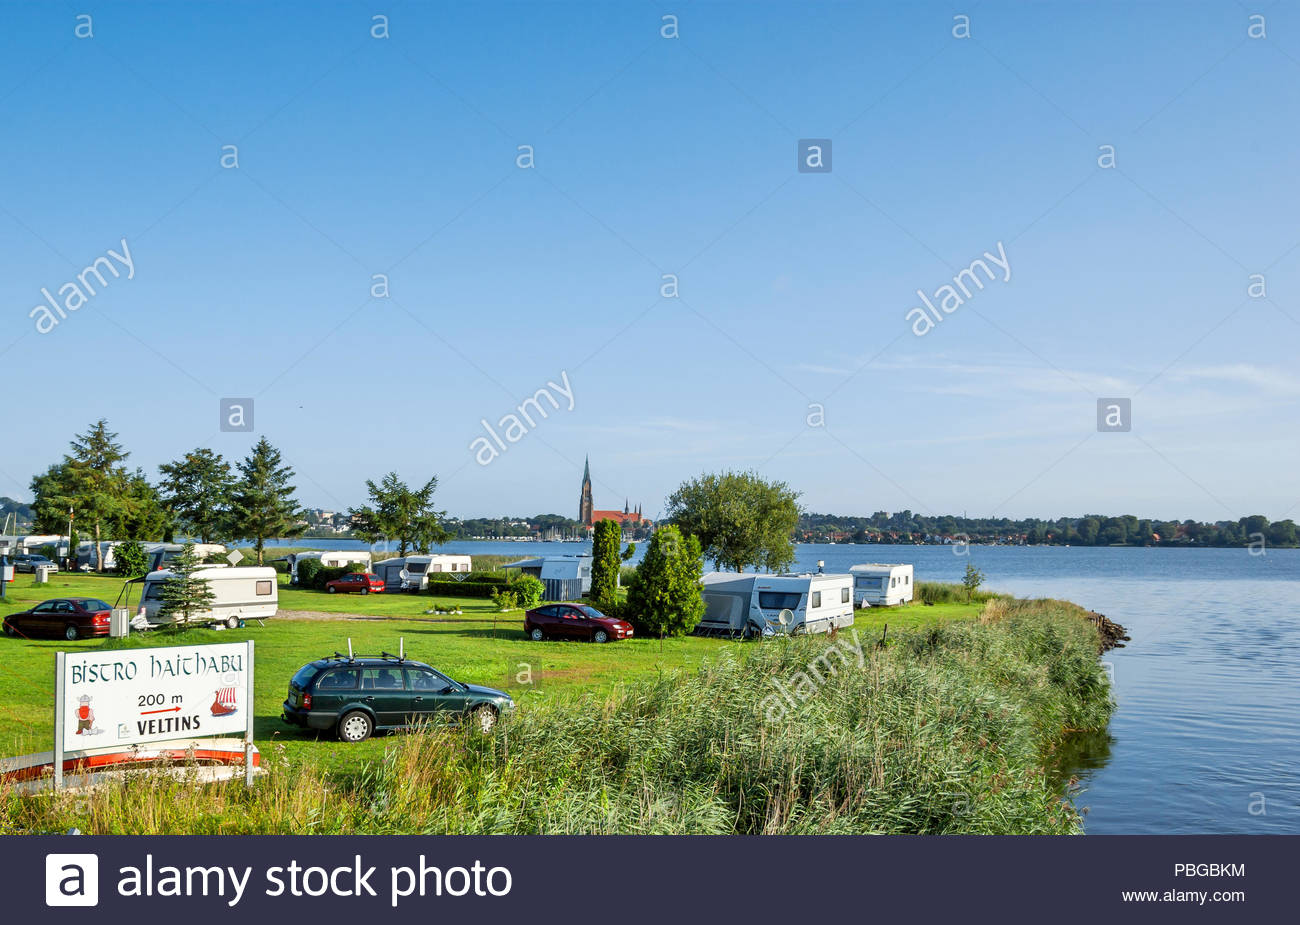 The Haithabu campground, city of Schleswig in background, is across the road from the Wikinger Museum, Haithabu, by the inlet to the Haddebyer Noor. - Stock Image